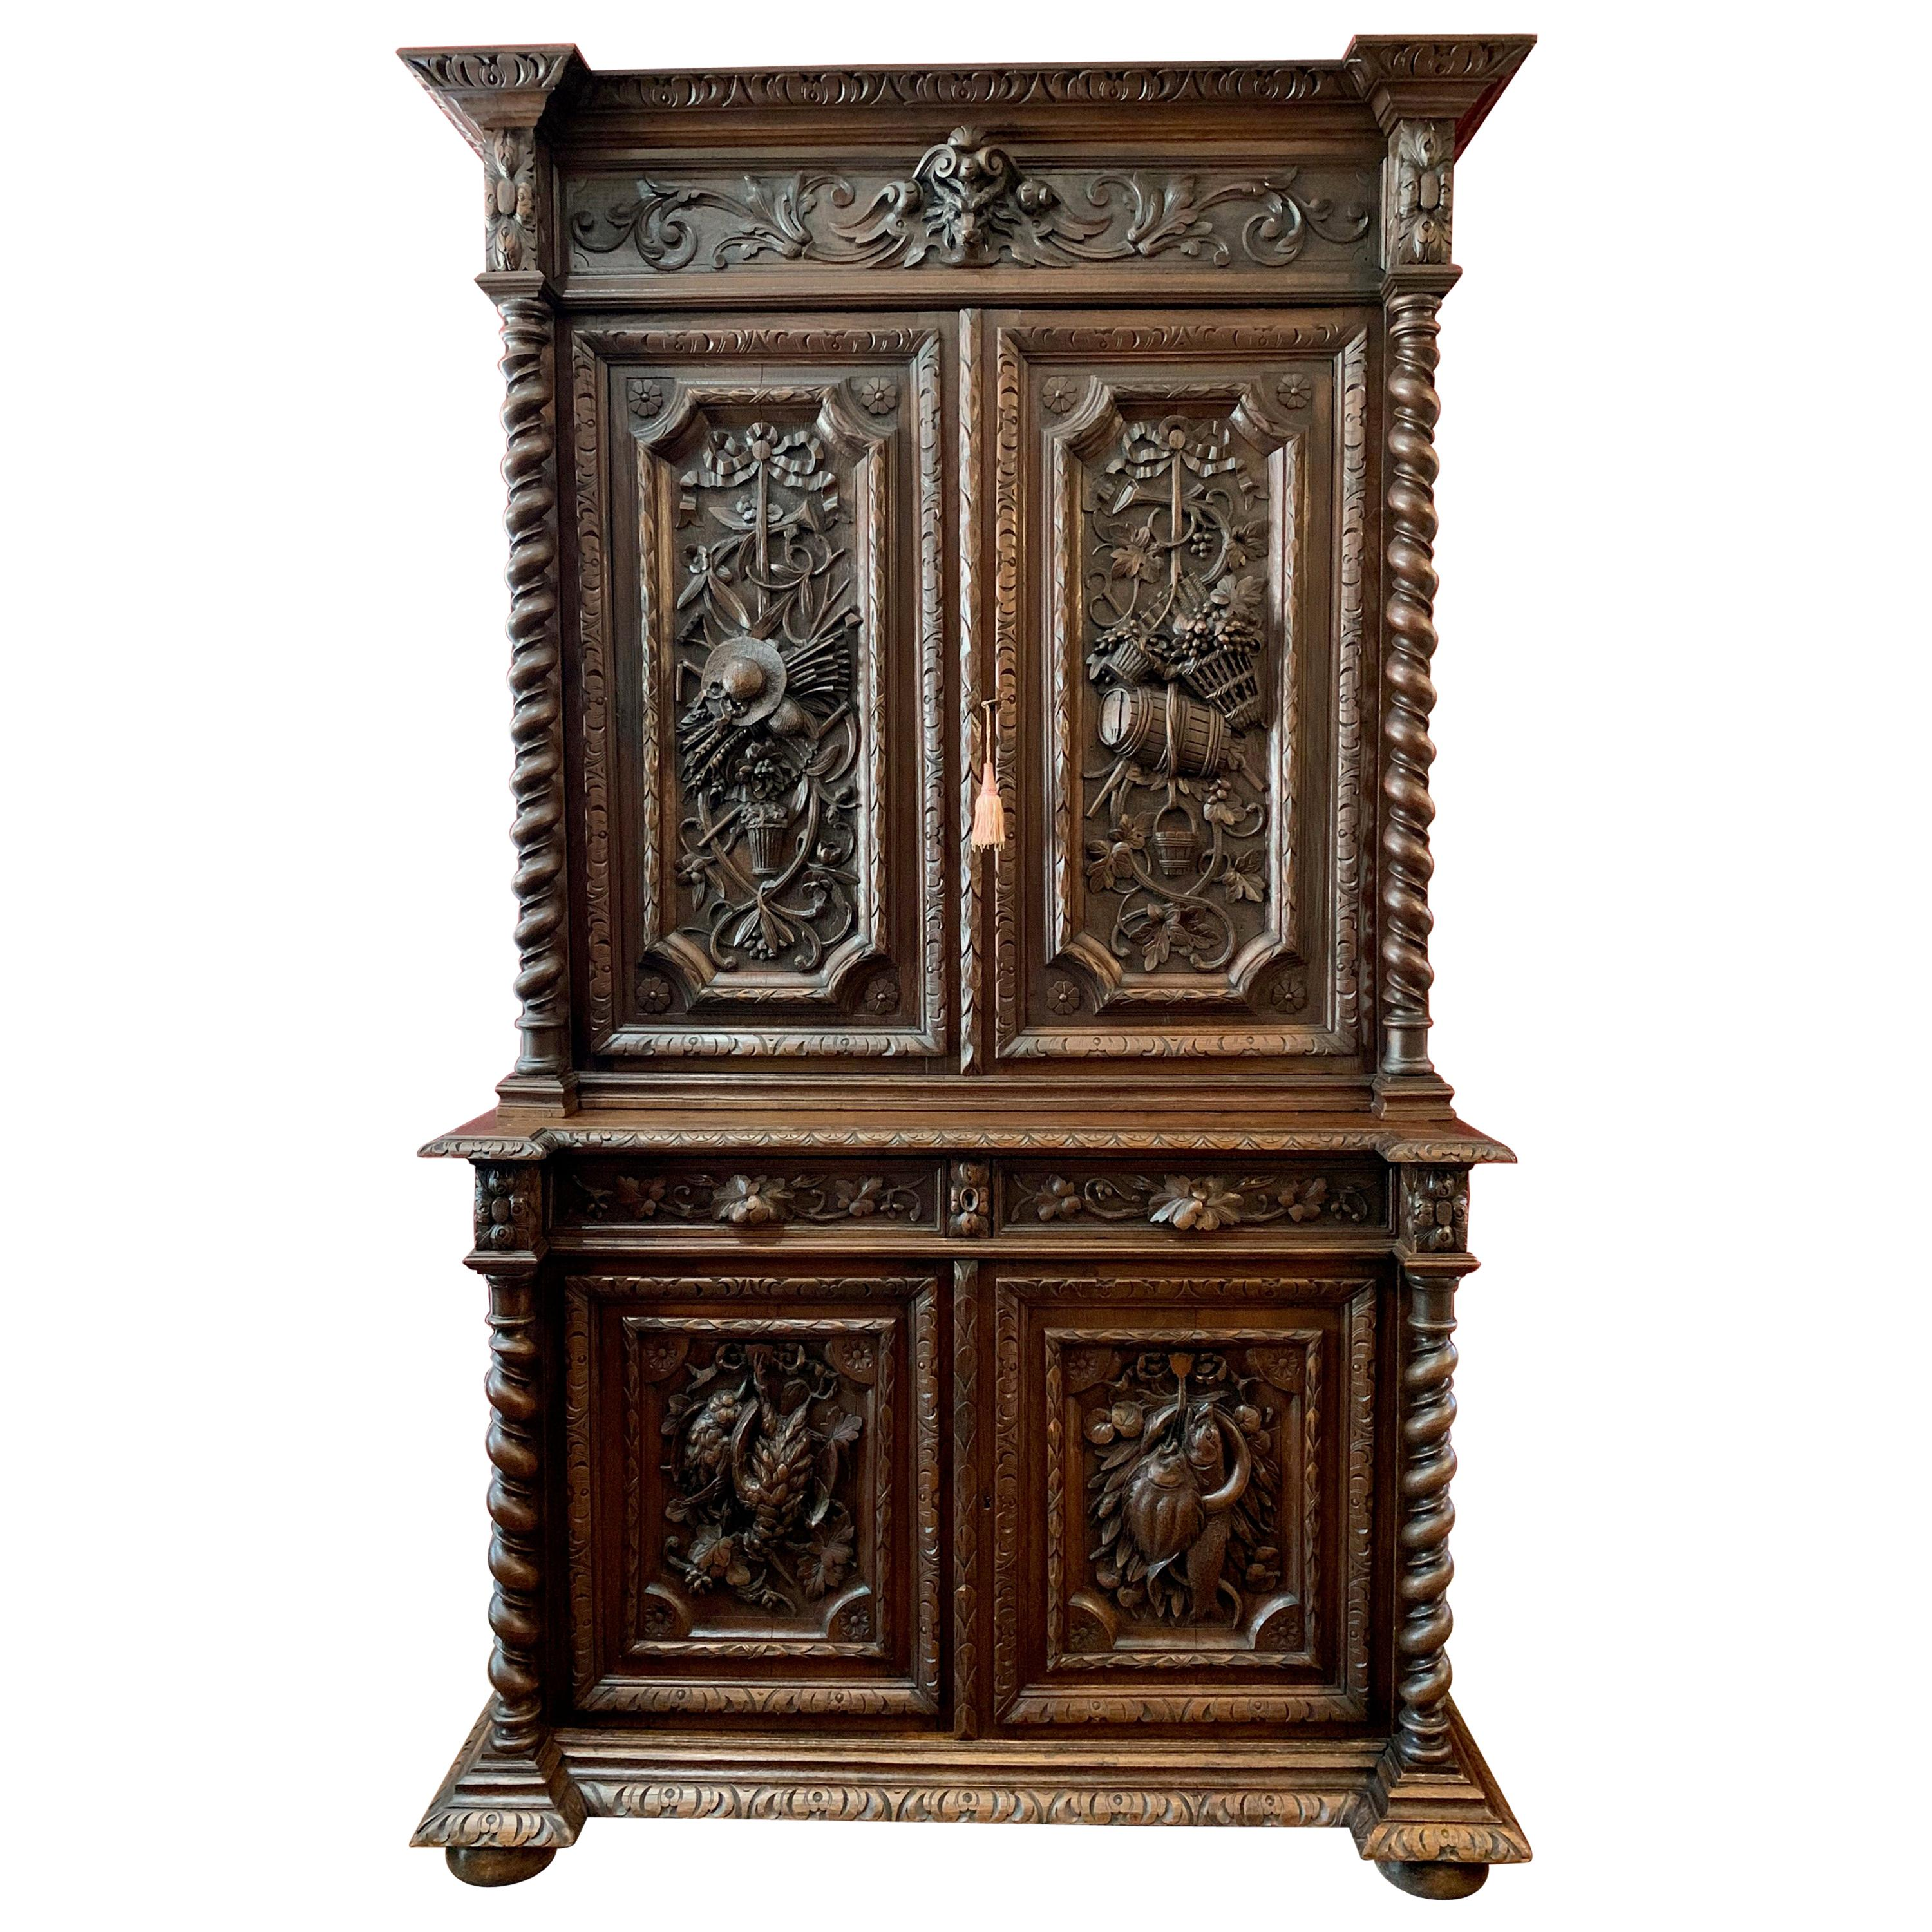 19th Century French Carved Oak Hunt Cabinet Bookcase Barley Twist Renaissance